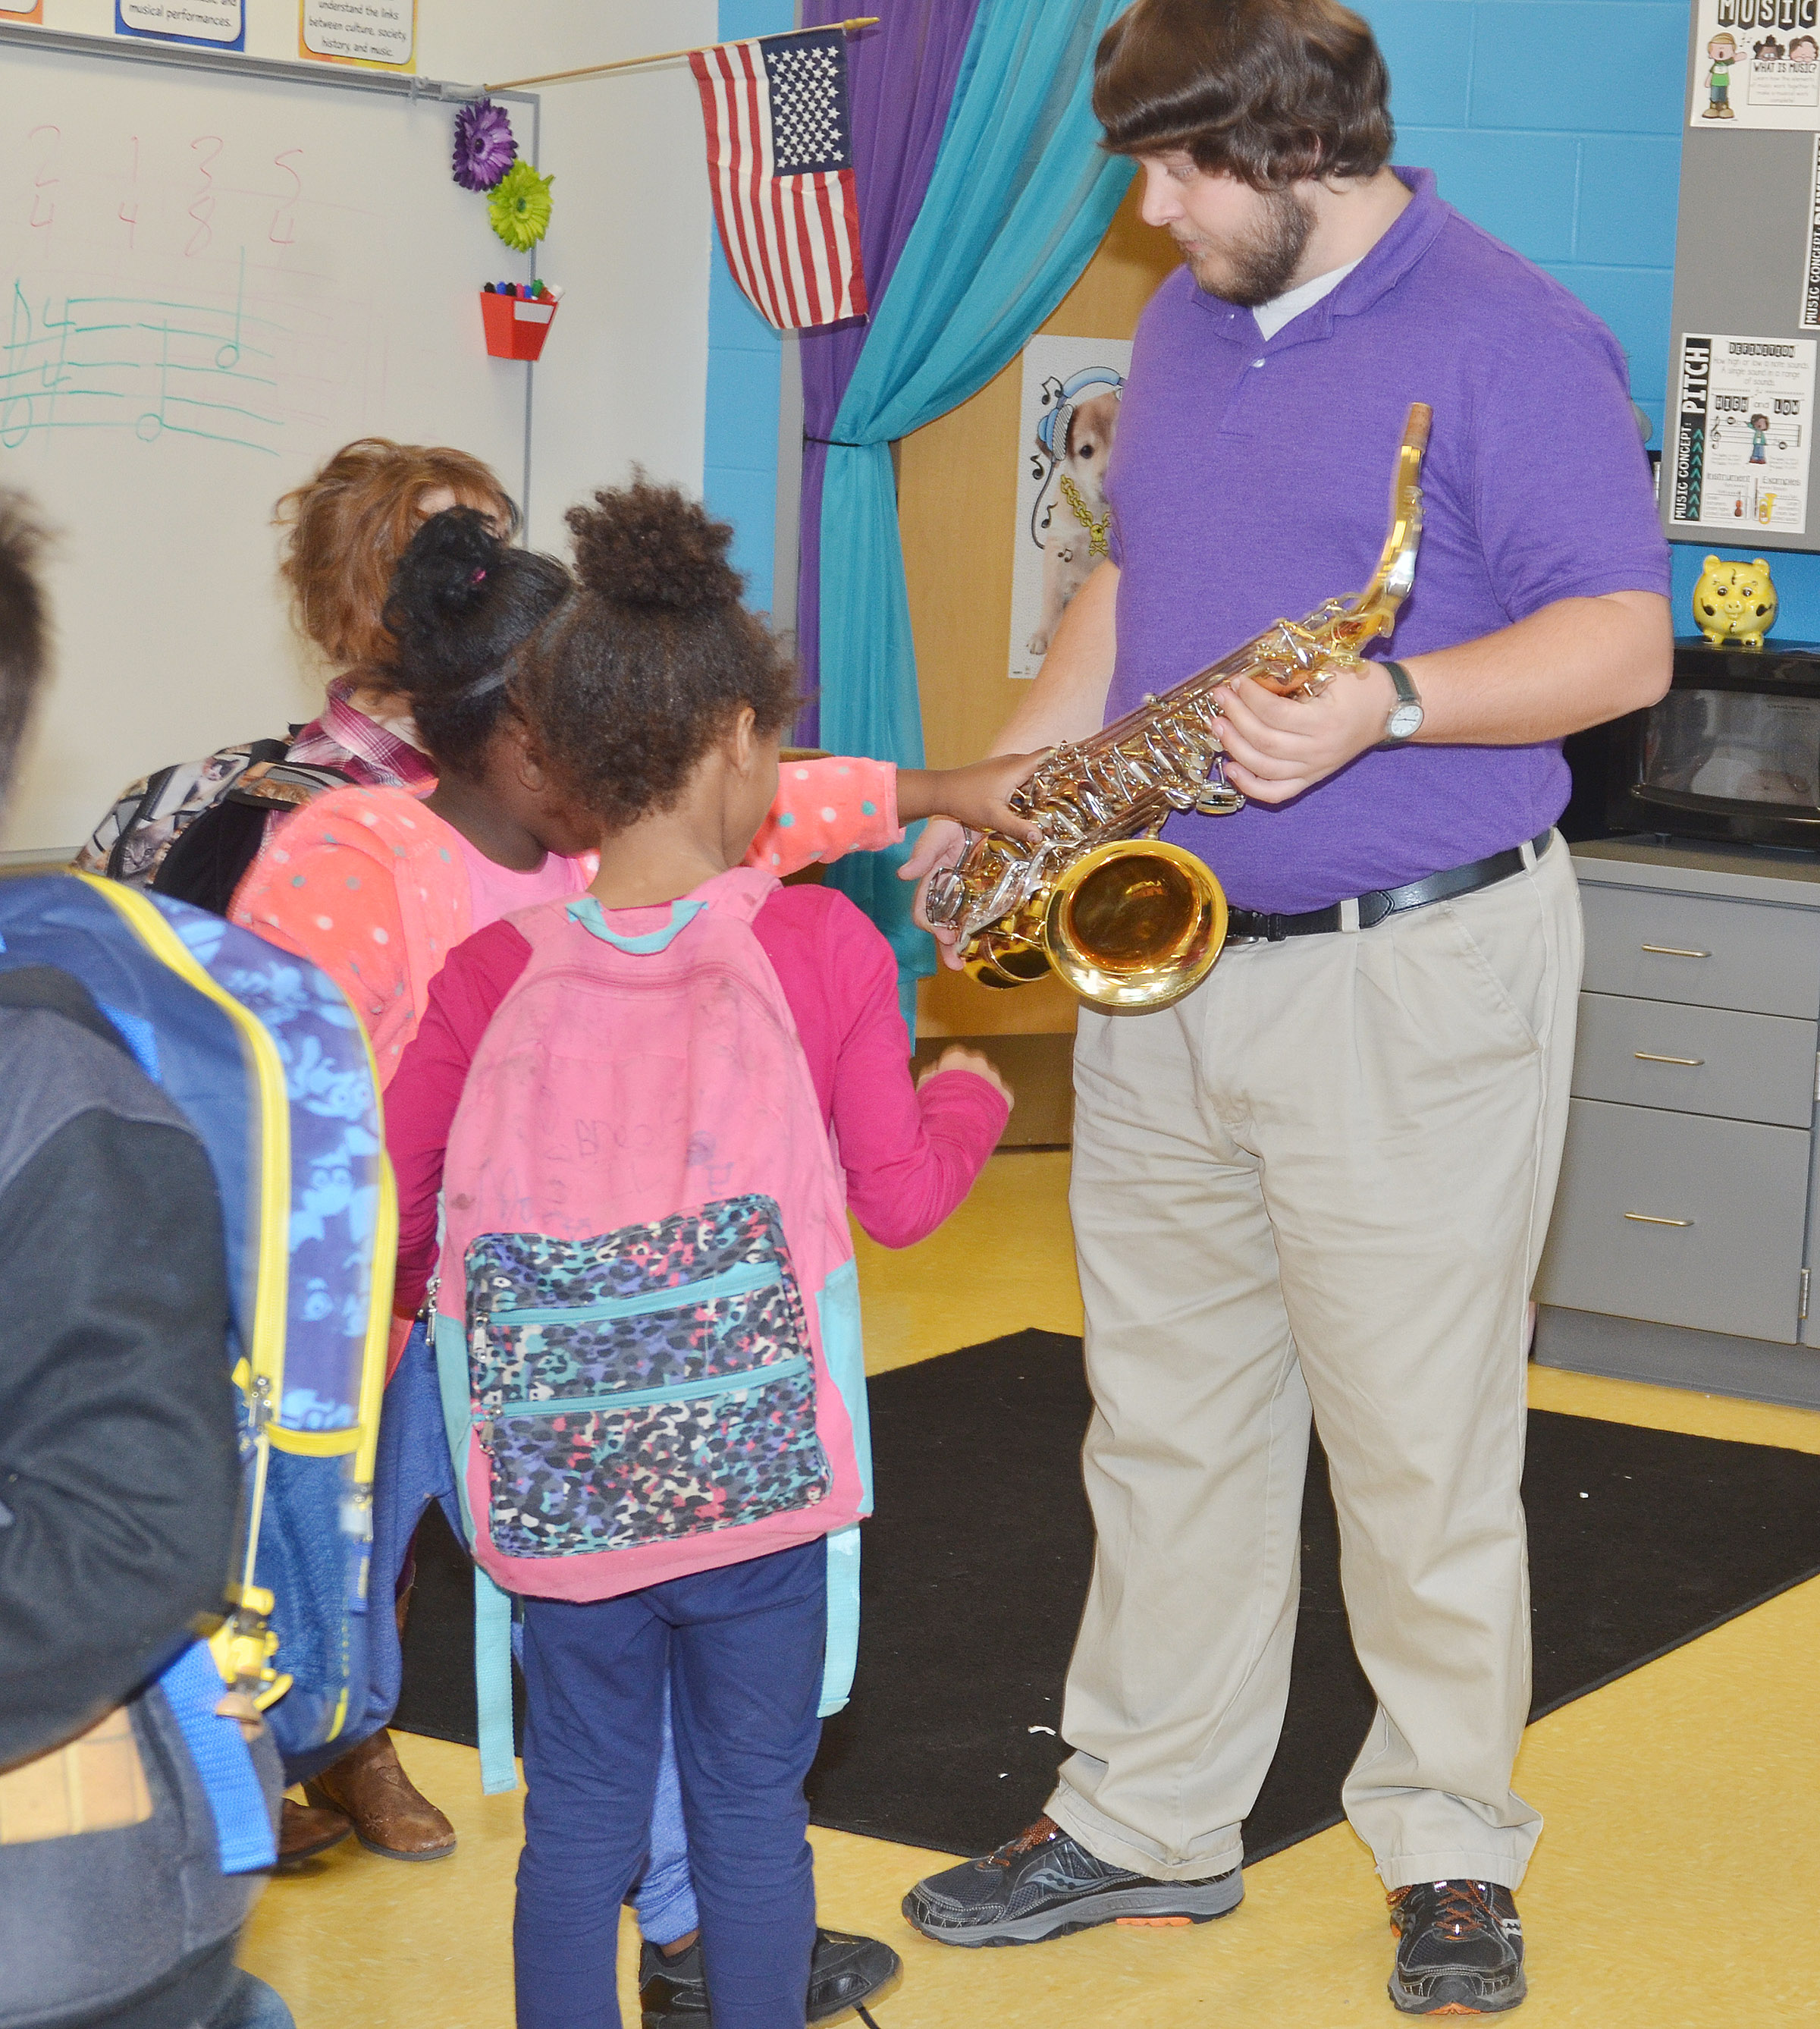 Campbellsville University education student Scott Caffee lets CES first-graders touch the keys on his tenor saxophone.